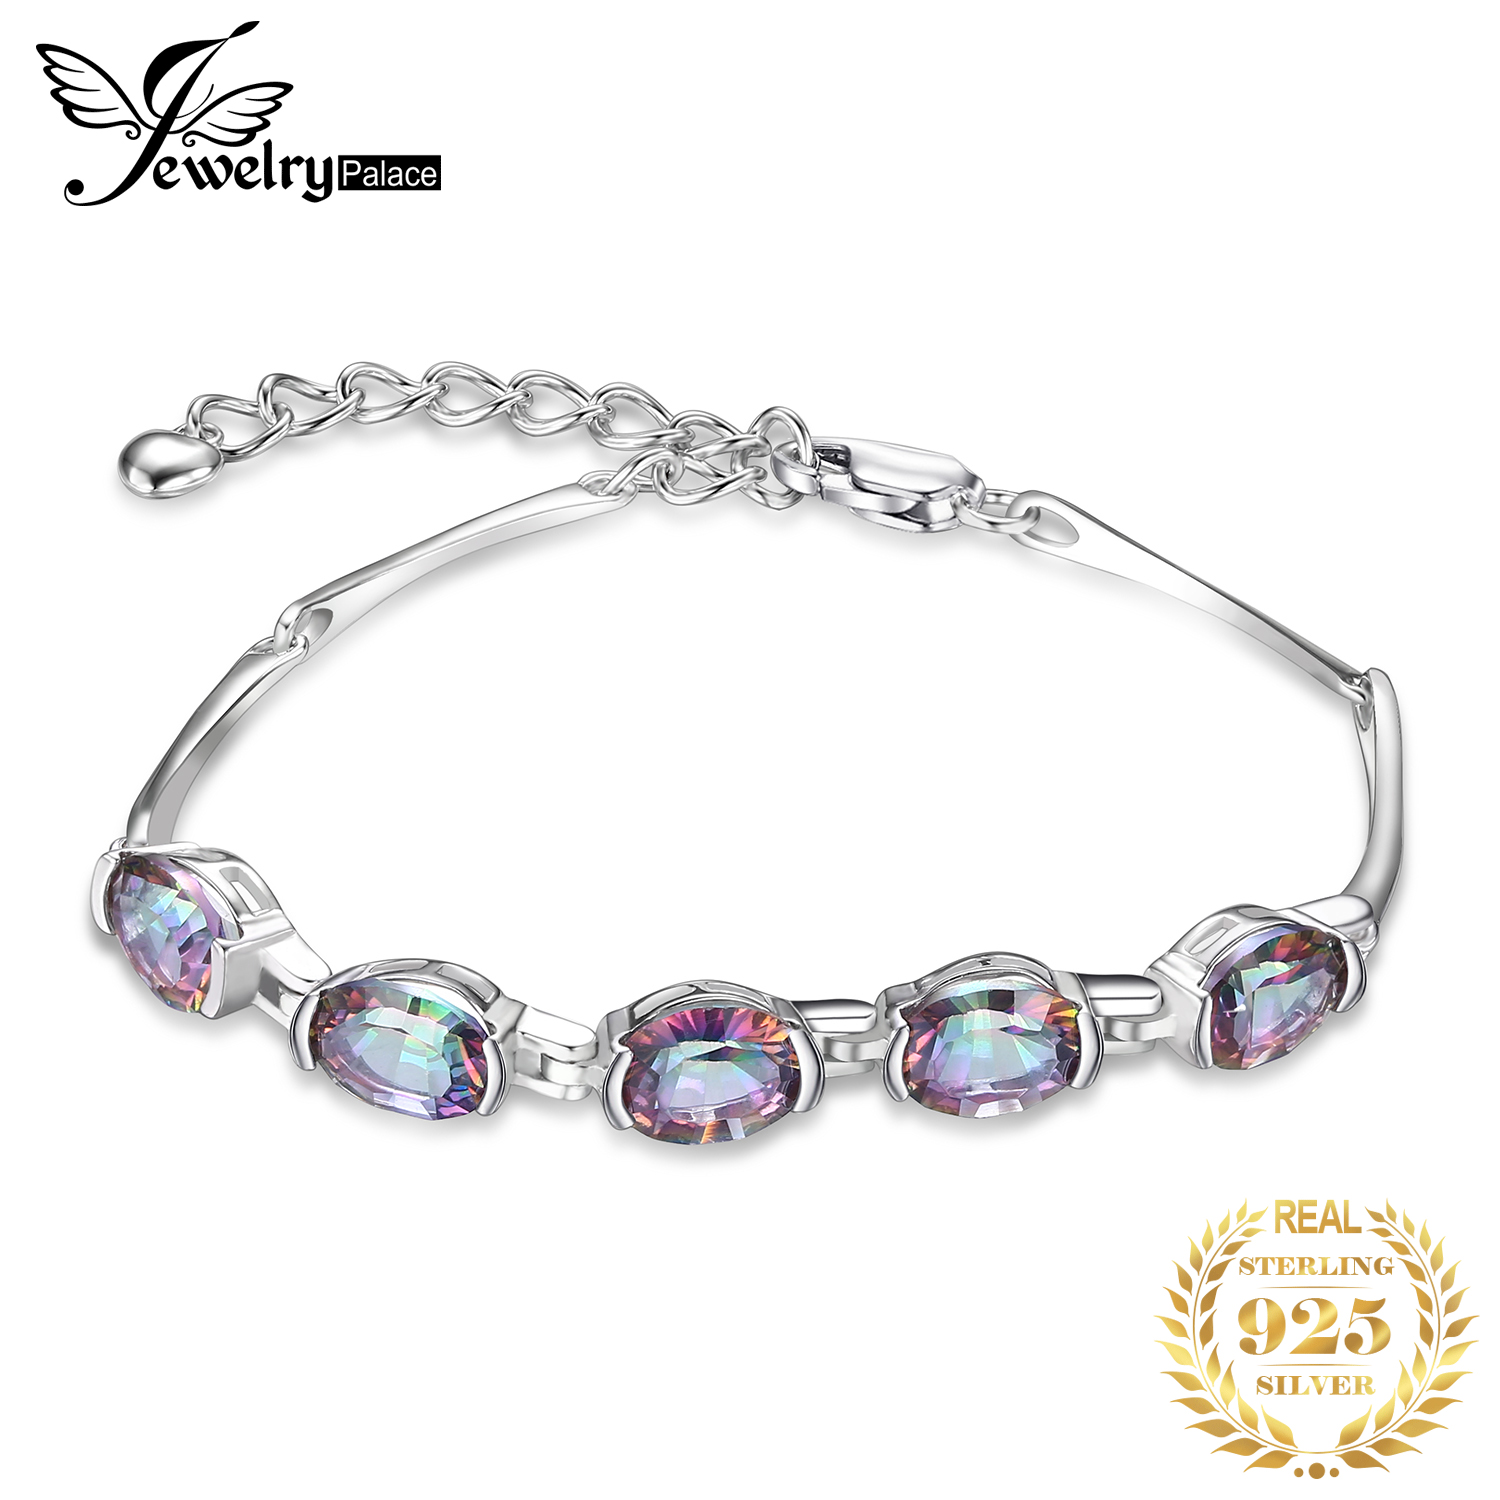 5 mm Cute Round Cut Natural Rainbow Mystic Topaz Argent Charme Bracelet 8/""